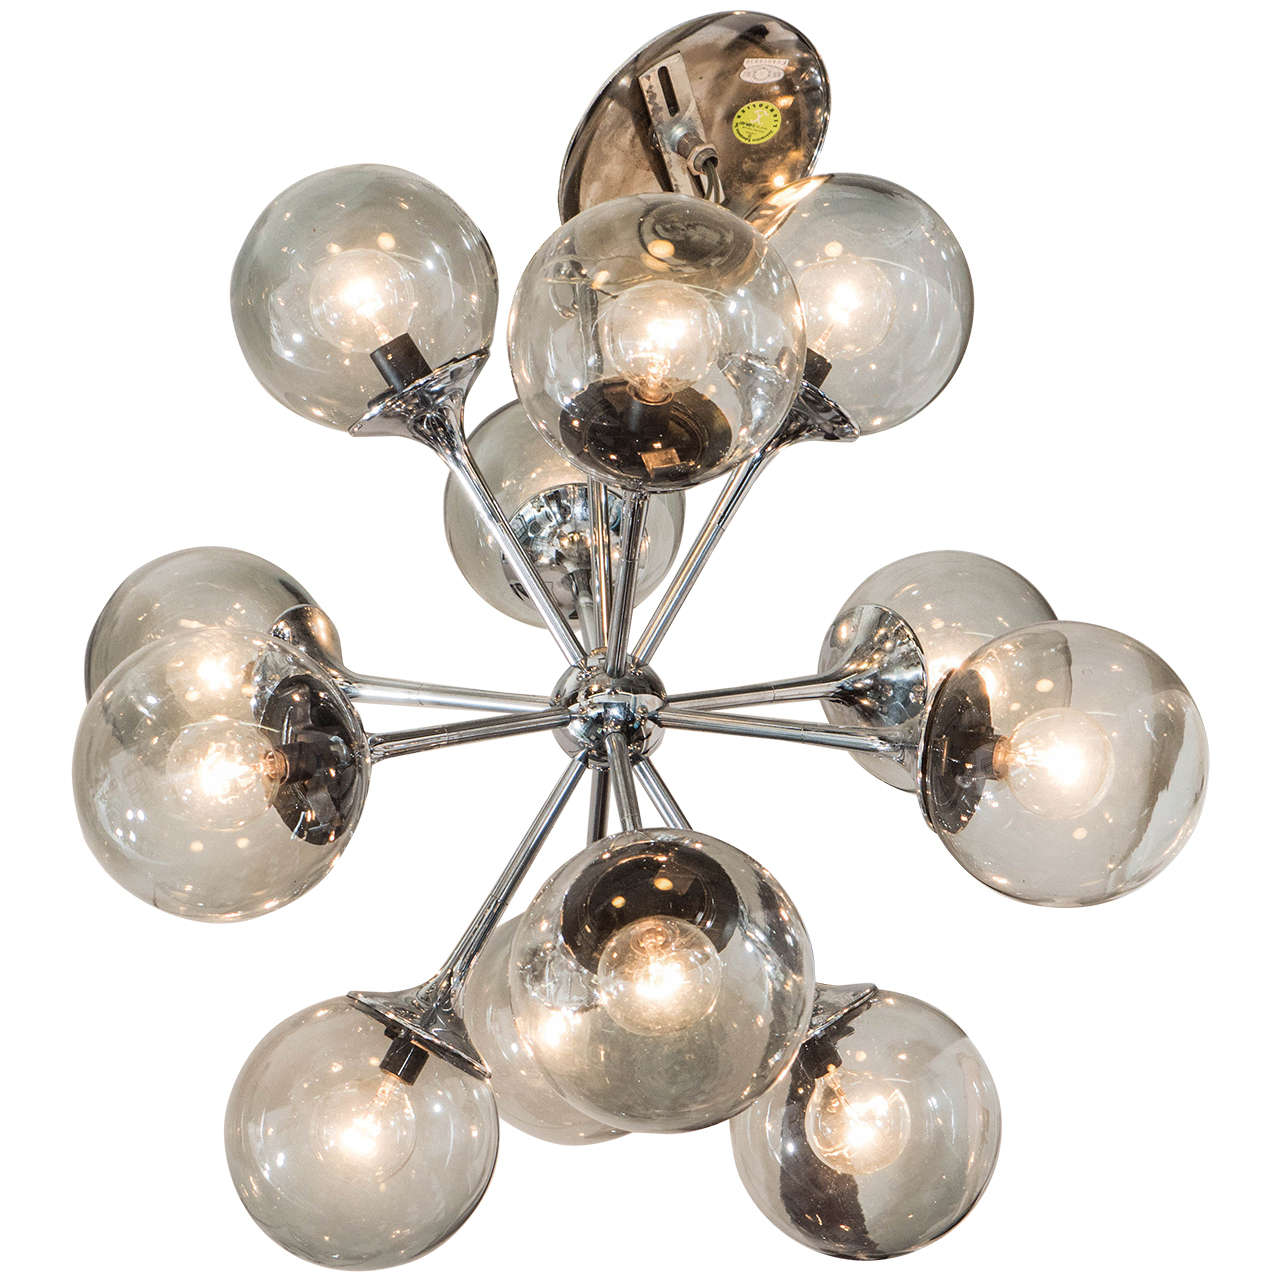 midcentury chrome and smoked bubble glass sputnik chandelier by lightolier . midcentury chrome and smoked bubble glass sputnik chandelier by